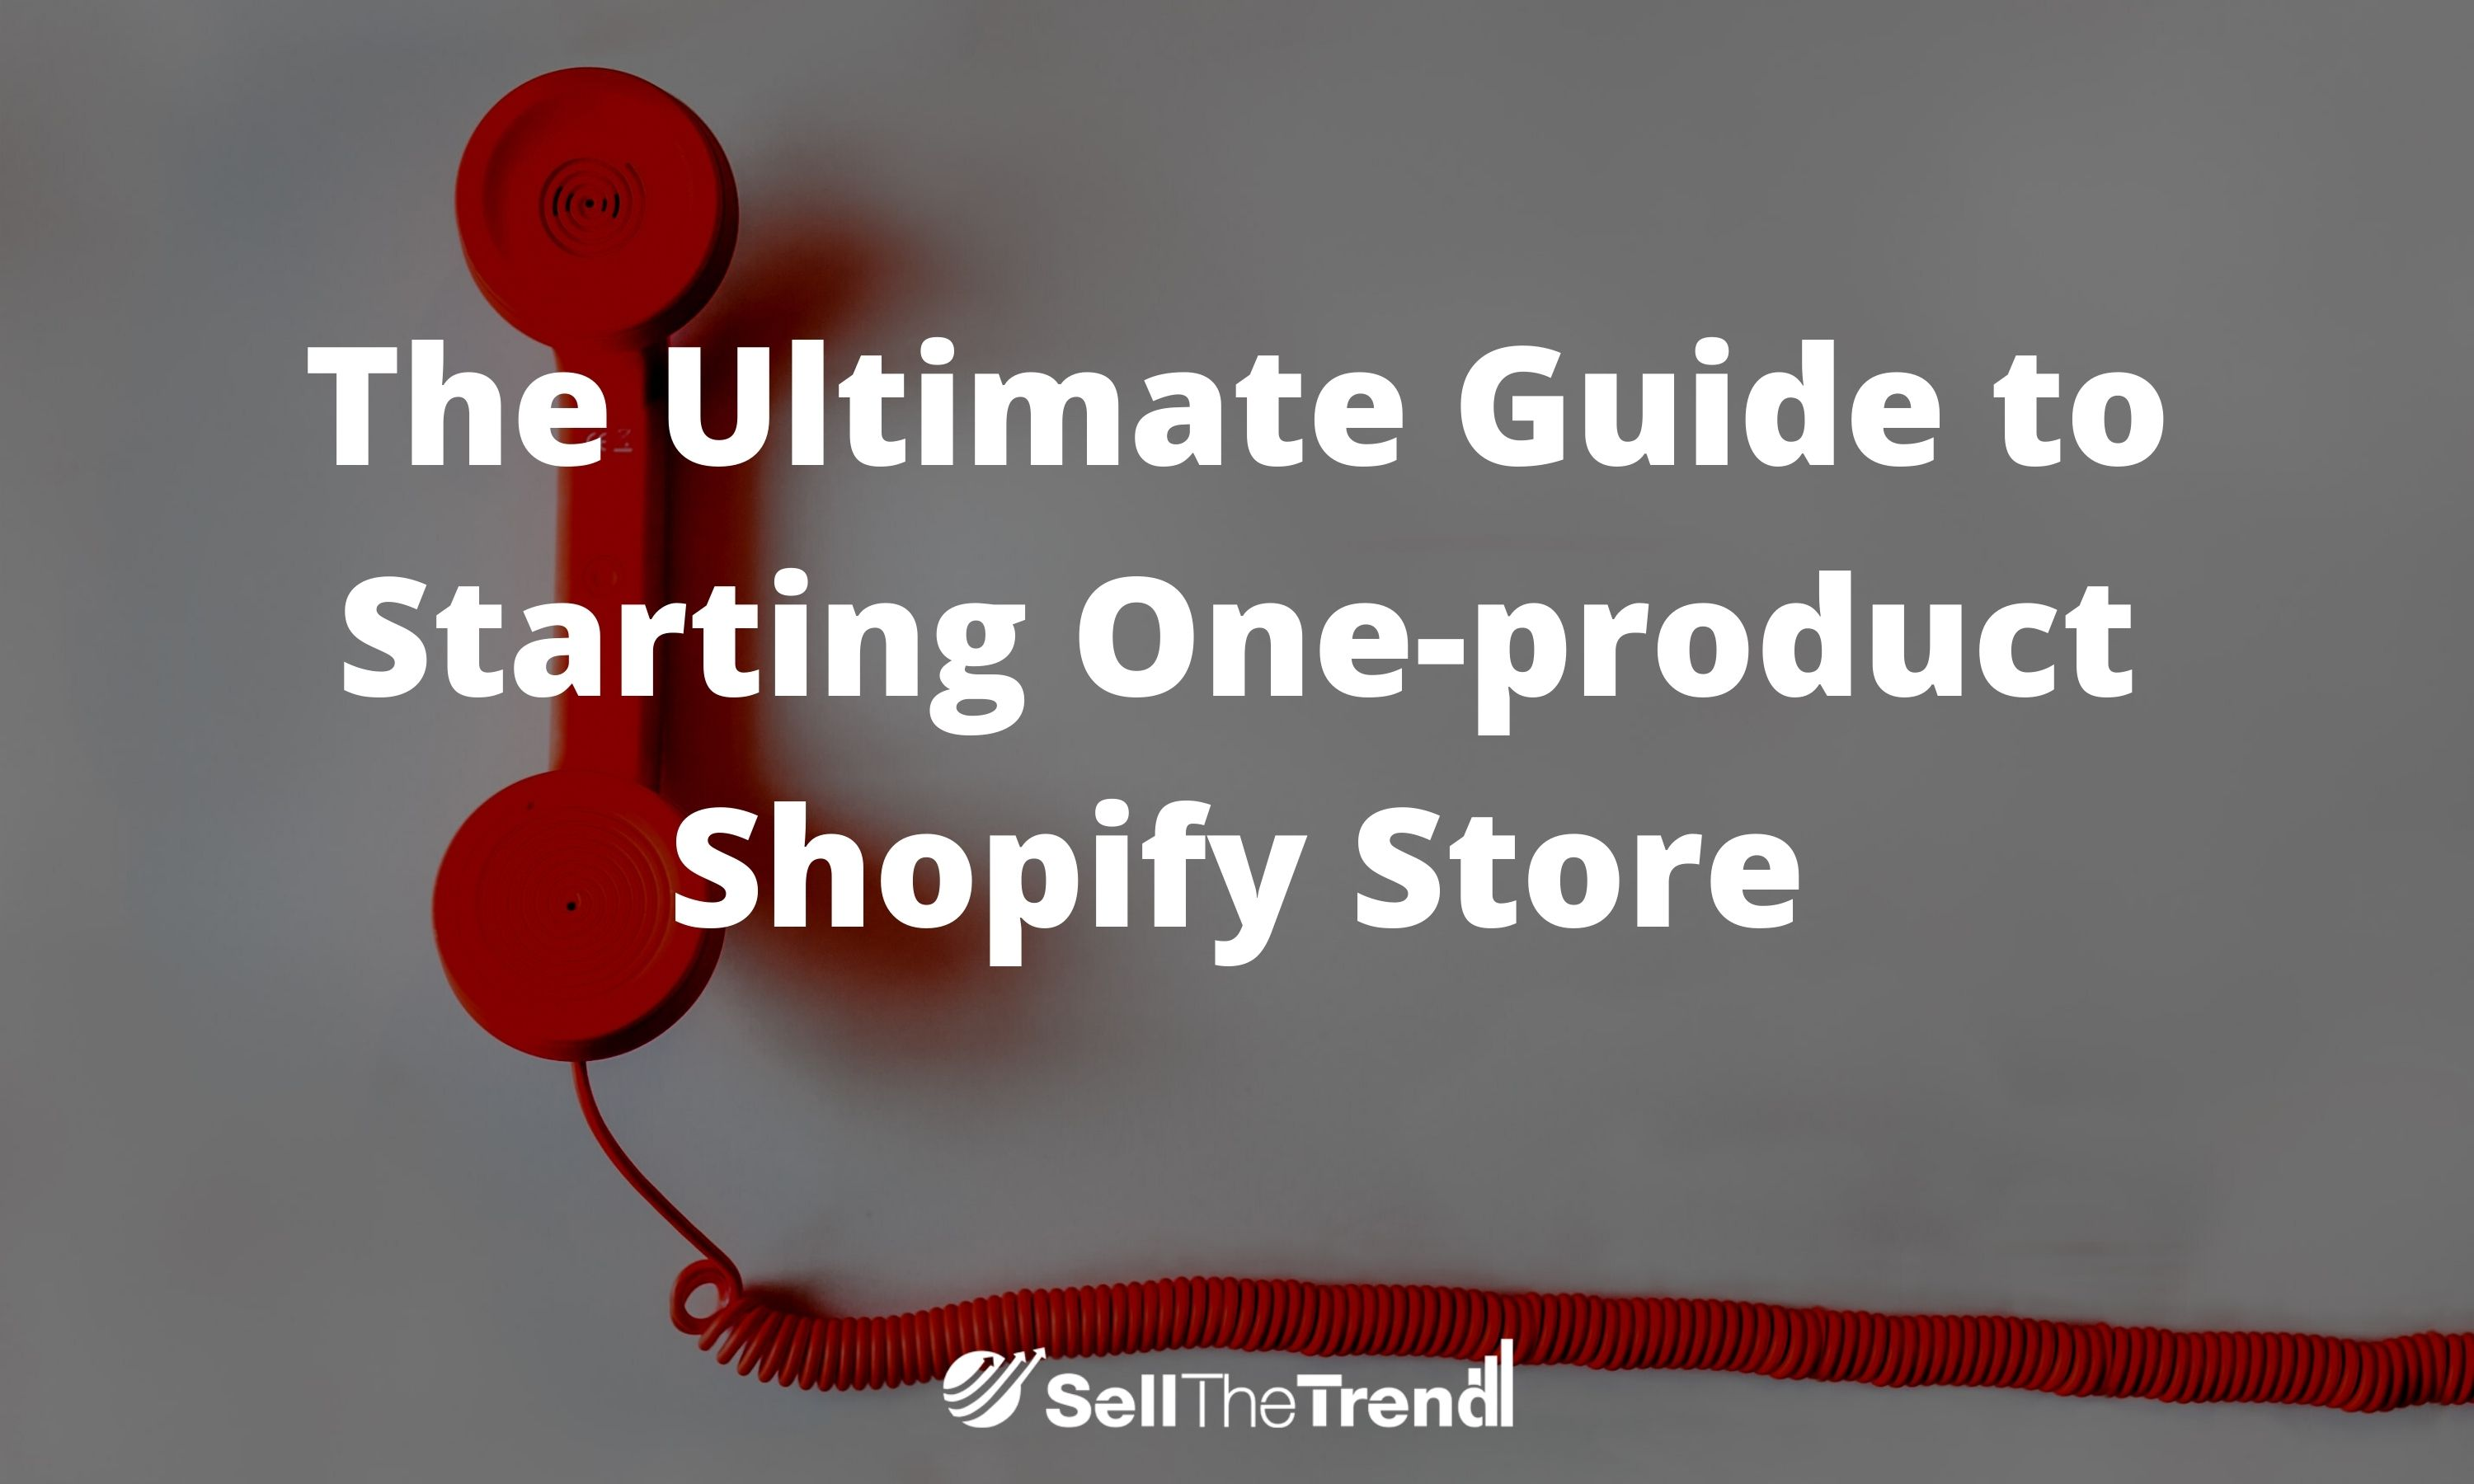 The Ultimate Guide to Start One-product Shopify Store